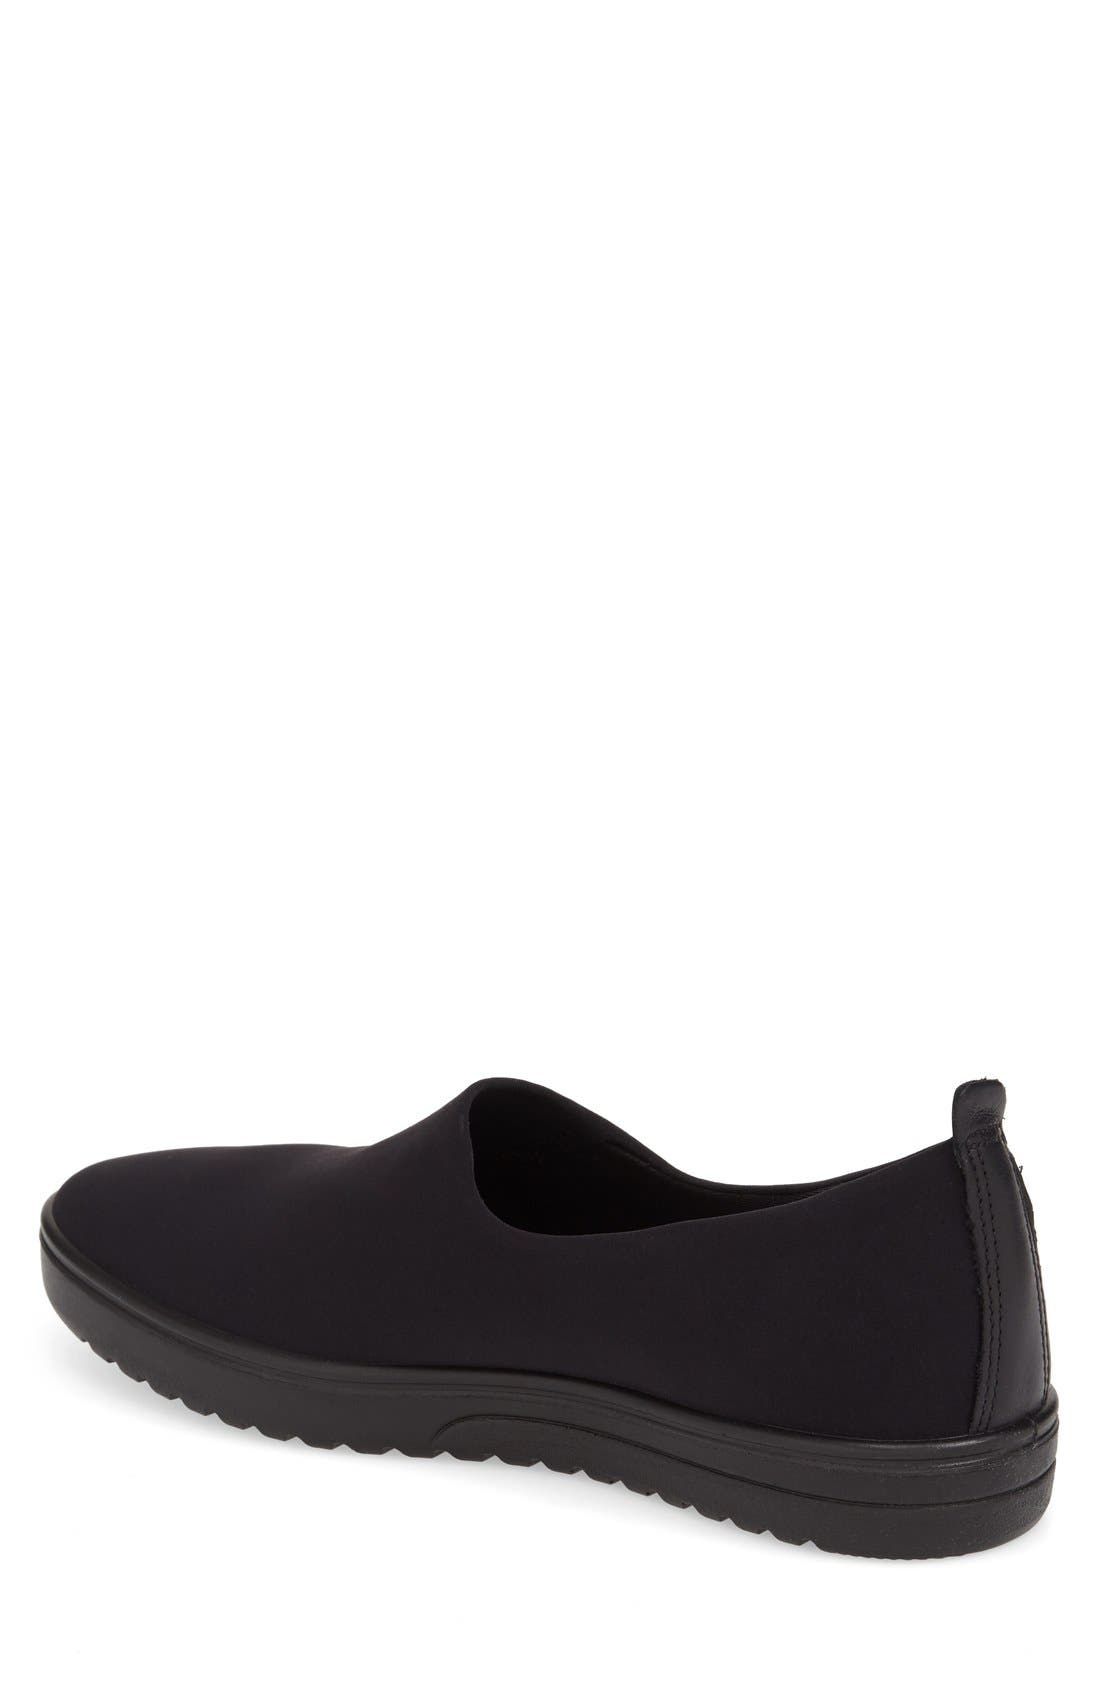 'Fara' Slip-On Sneaker,                             Alternate thumbnail 6, color,